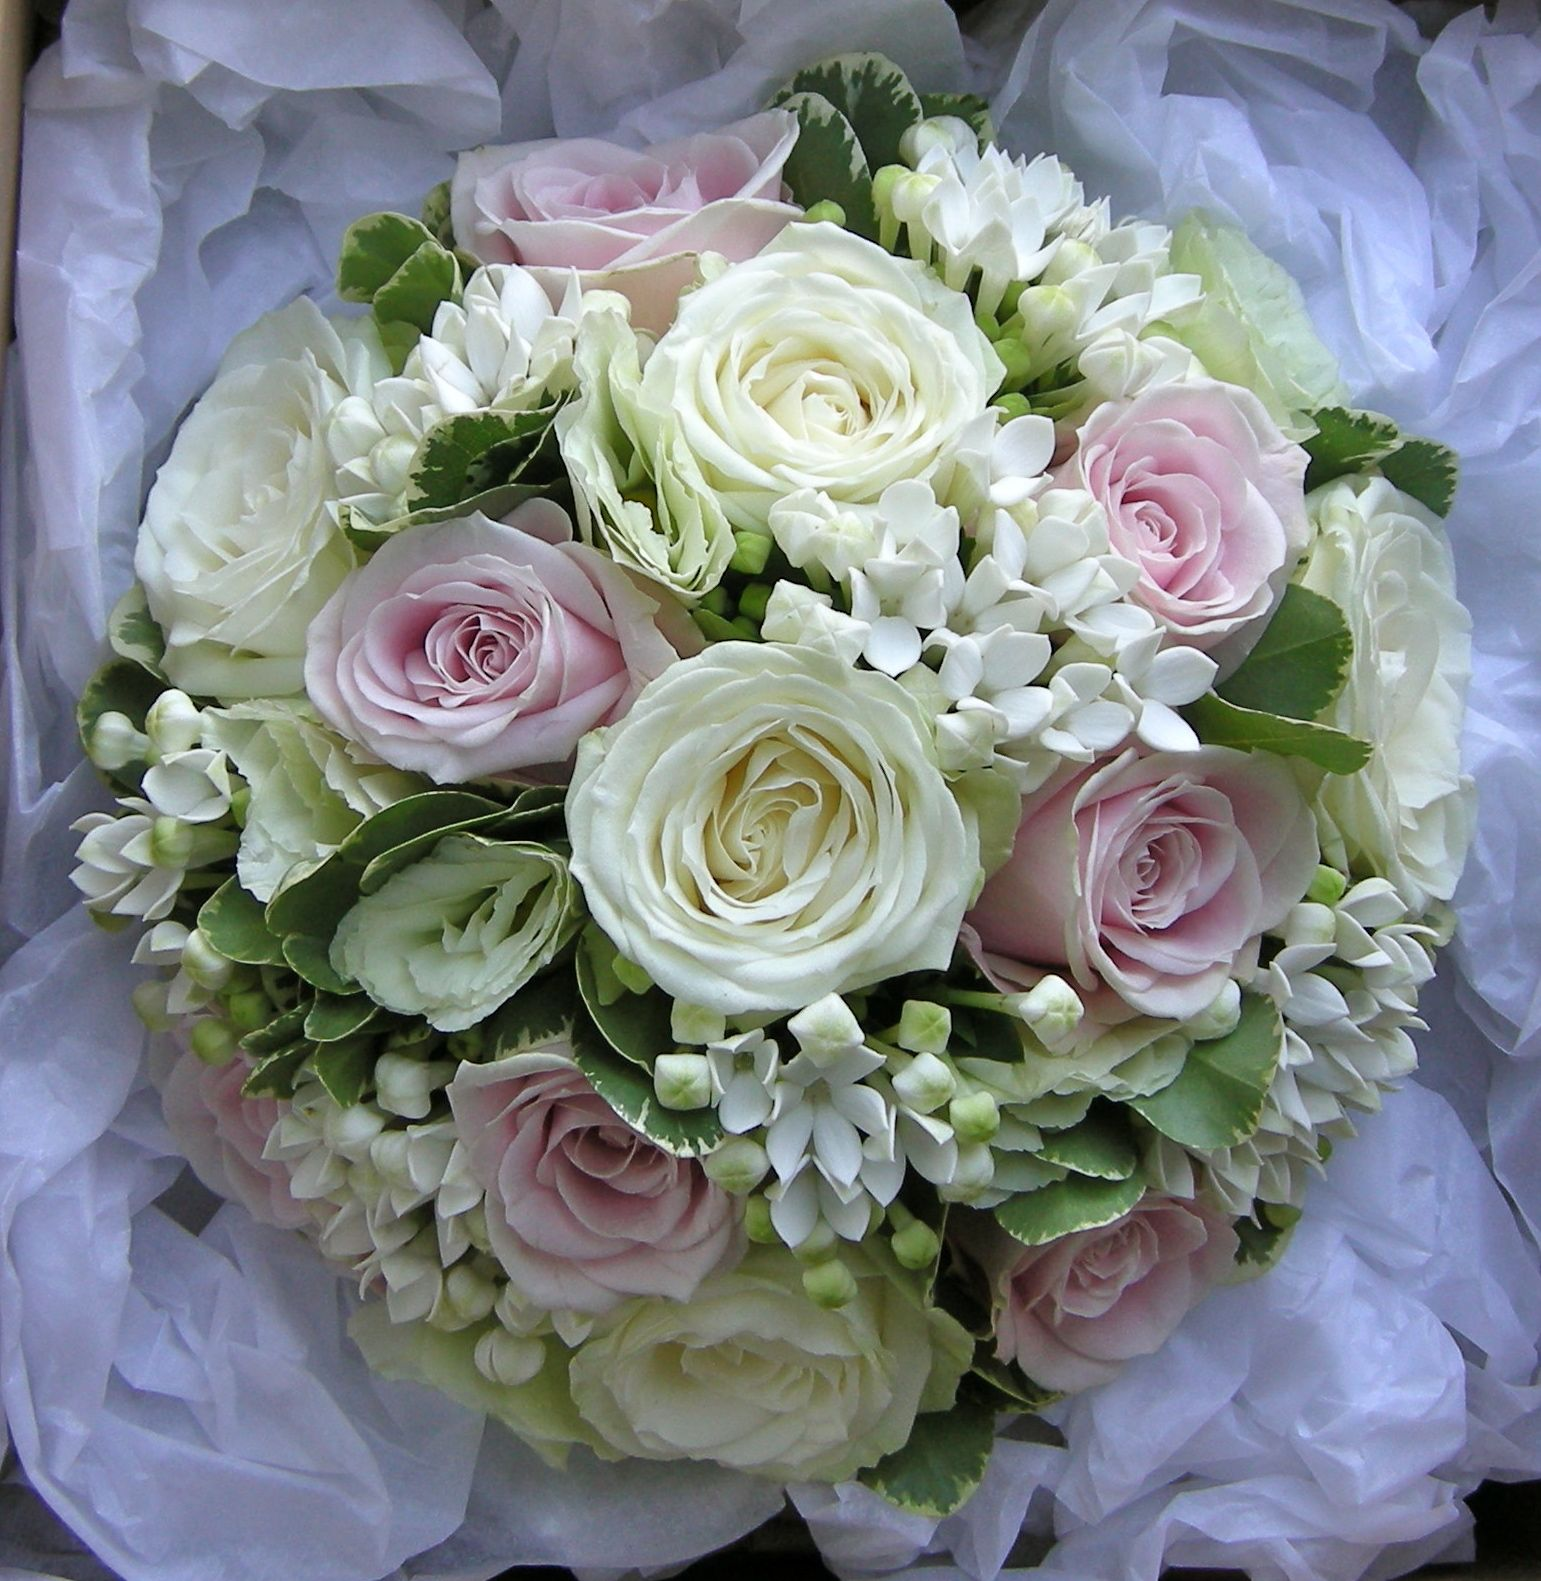 Pink Wedding Flowers: Wedding Flowers Blog: Nikki's Classic Green, White And